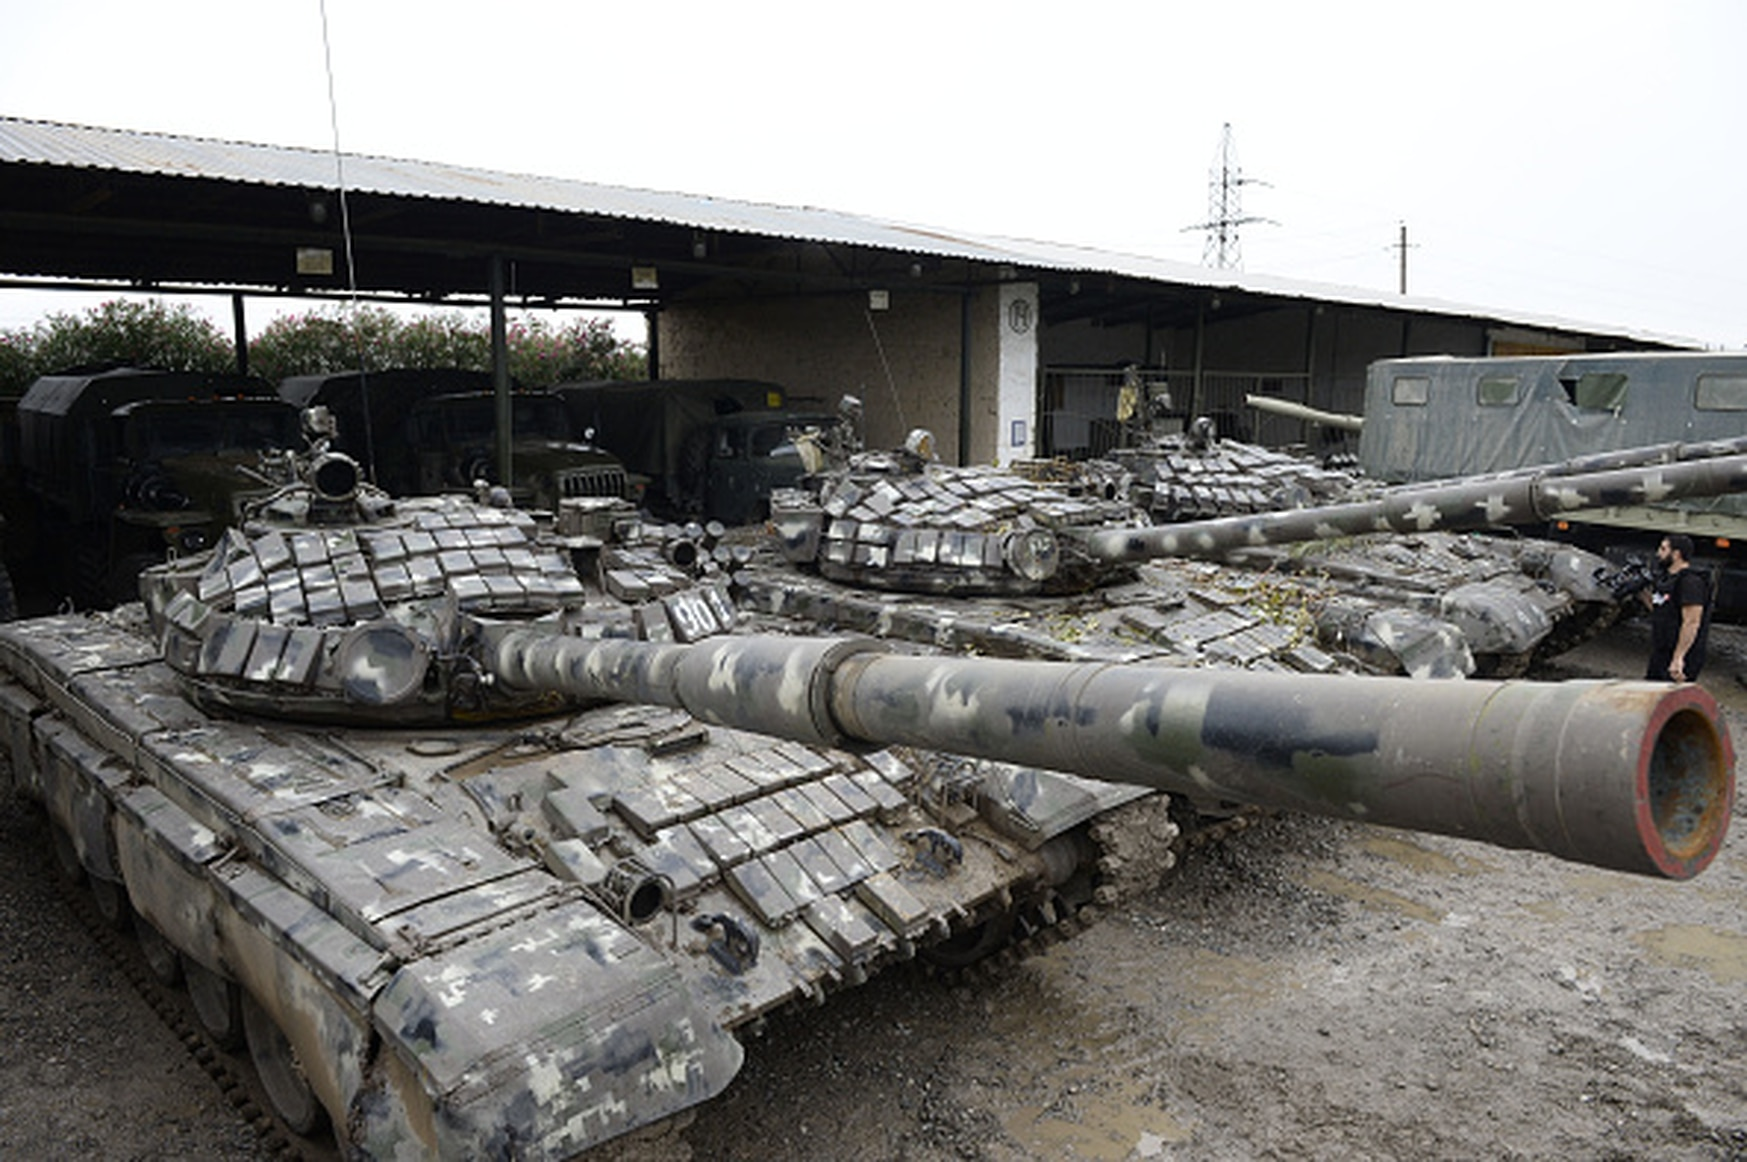 Tanks are shown in the town of Beylagan on Oct. 5, 2020. Azeri military officials claim they were seized during the ongoing fighting with Armenia over the Nagorno-Karabakh region. (Tofik Babayev/AFP via Getty Images)